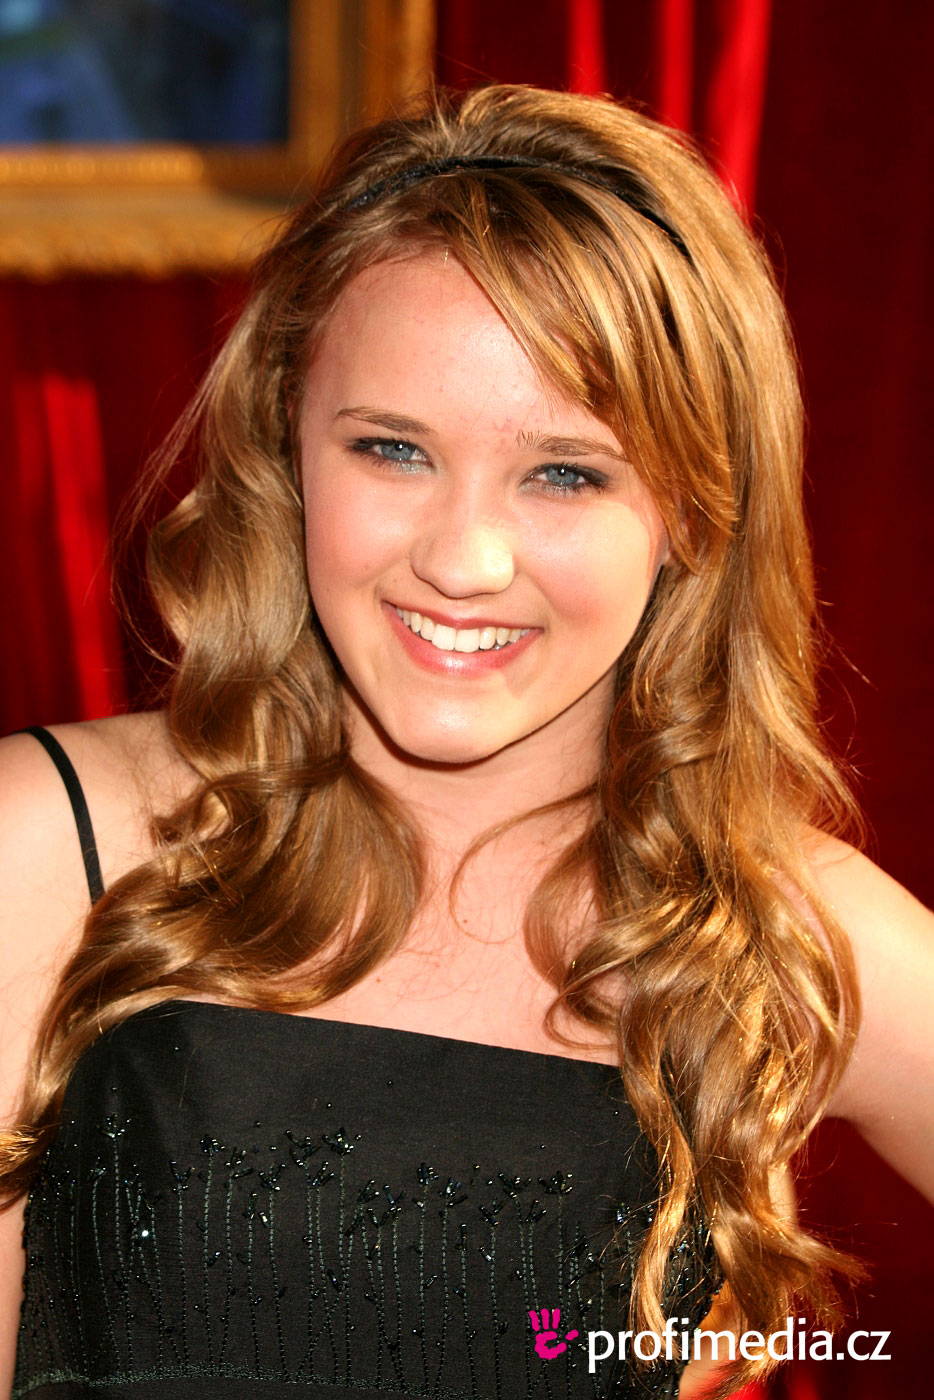 prom hairstyle - emily osment - emily osment